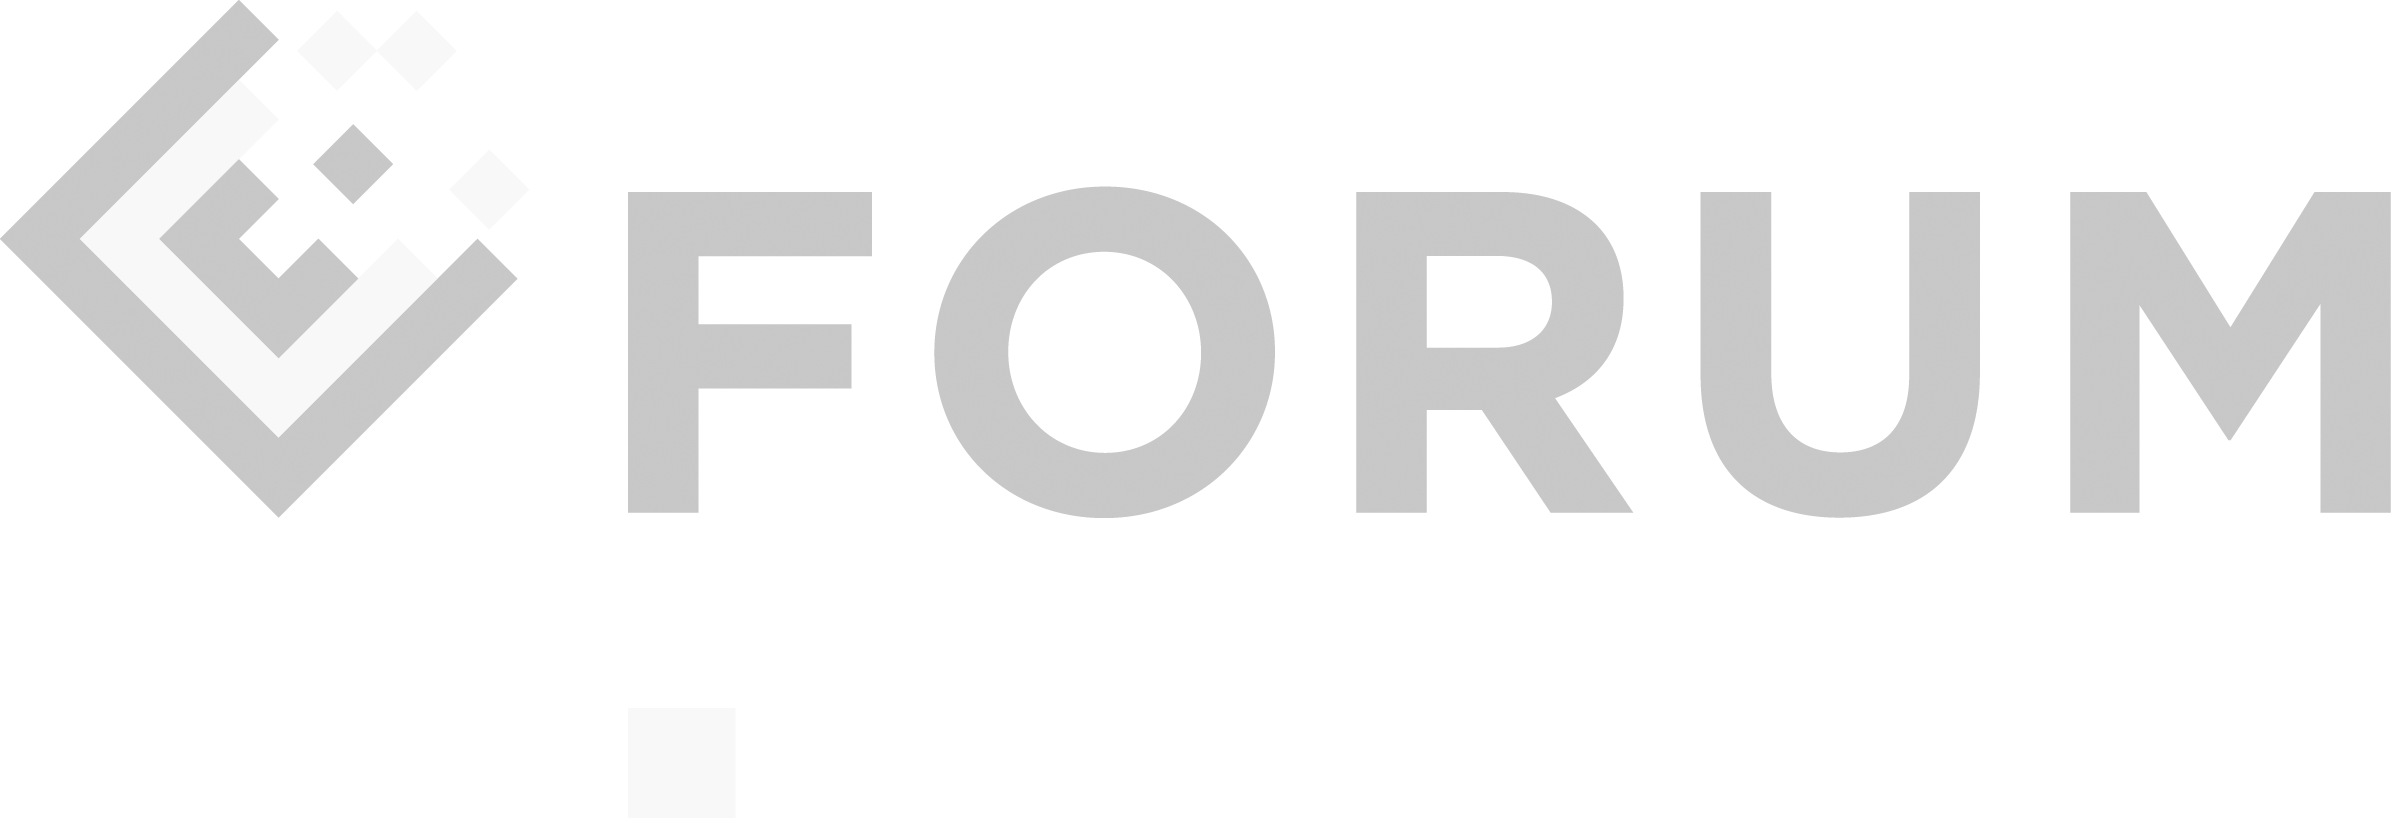 Logo for the United Philanthropy Forum